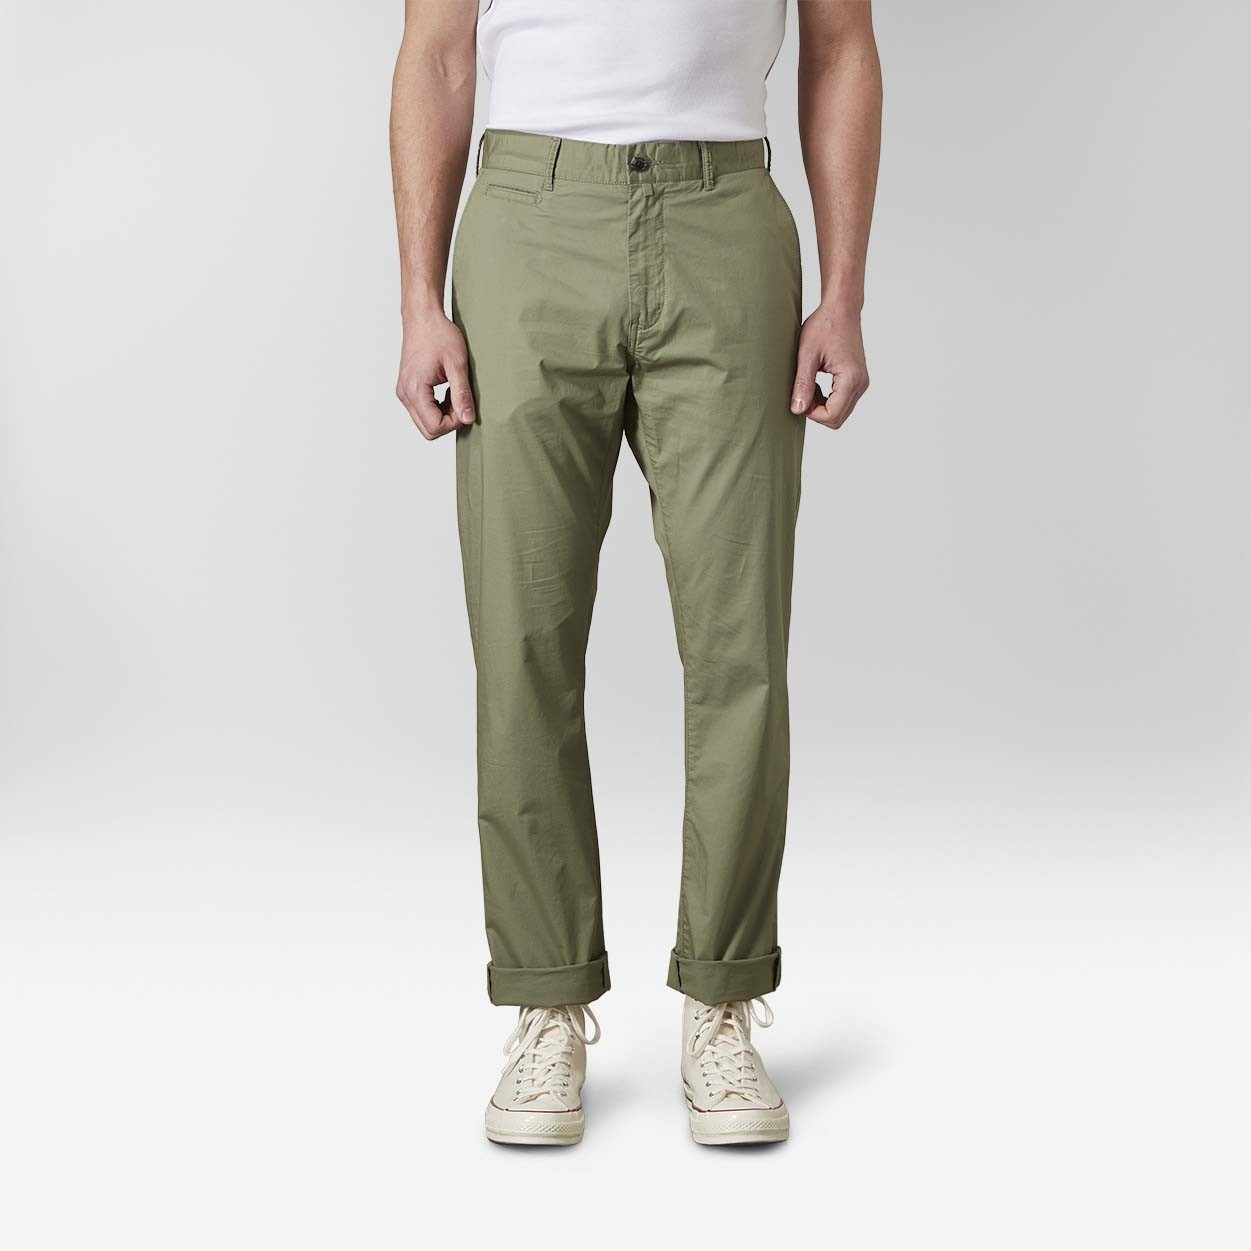 Baxter Light Weight Chinos Grön| East West | Brothers.se